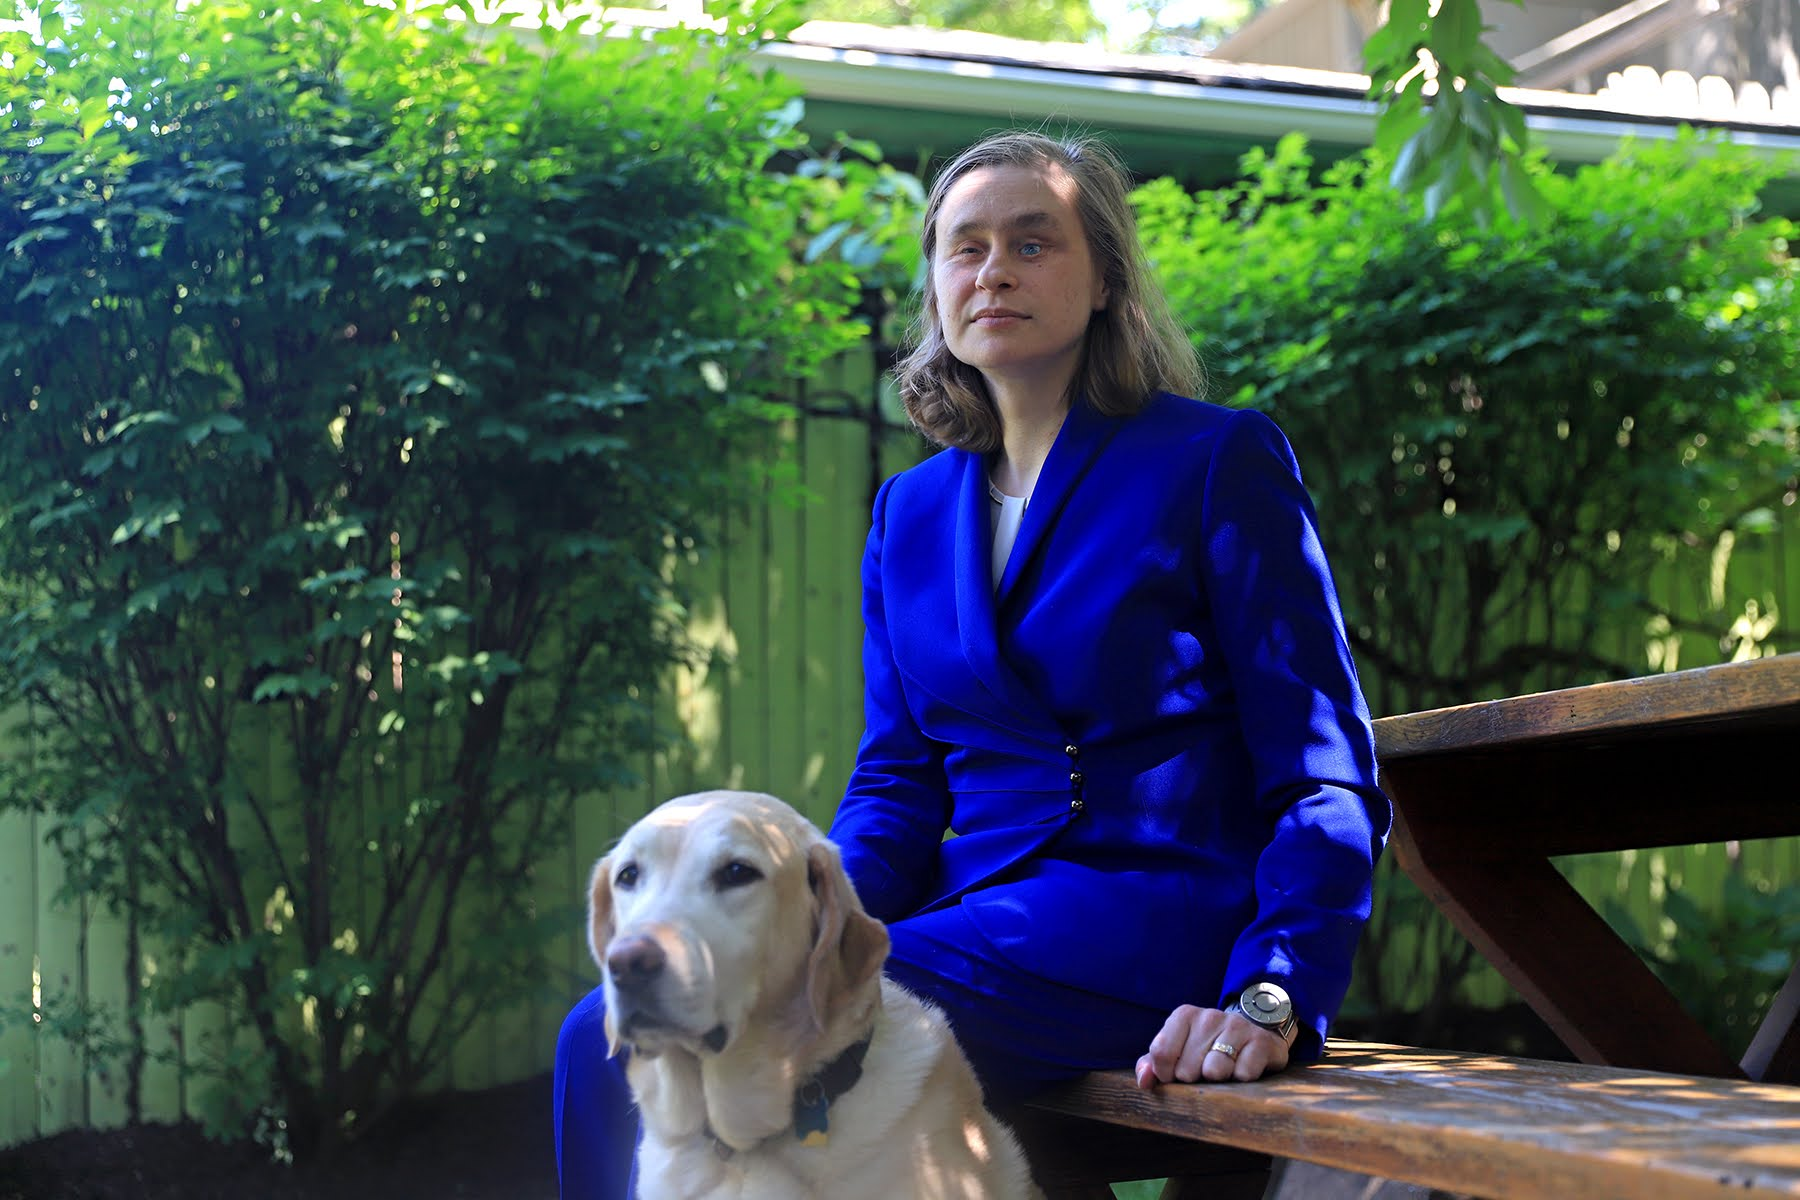 Photograph of essay author Catherine Getchell, a blind woman wearing a blue suit.       She is in her backyard sitting on a wooden bench. Her guide dog is sitting in front of her.